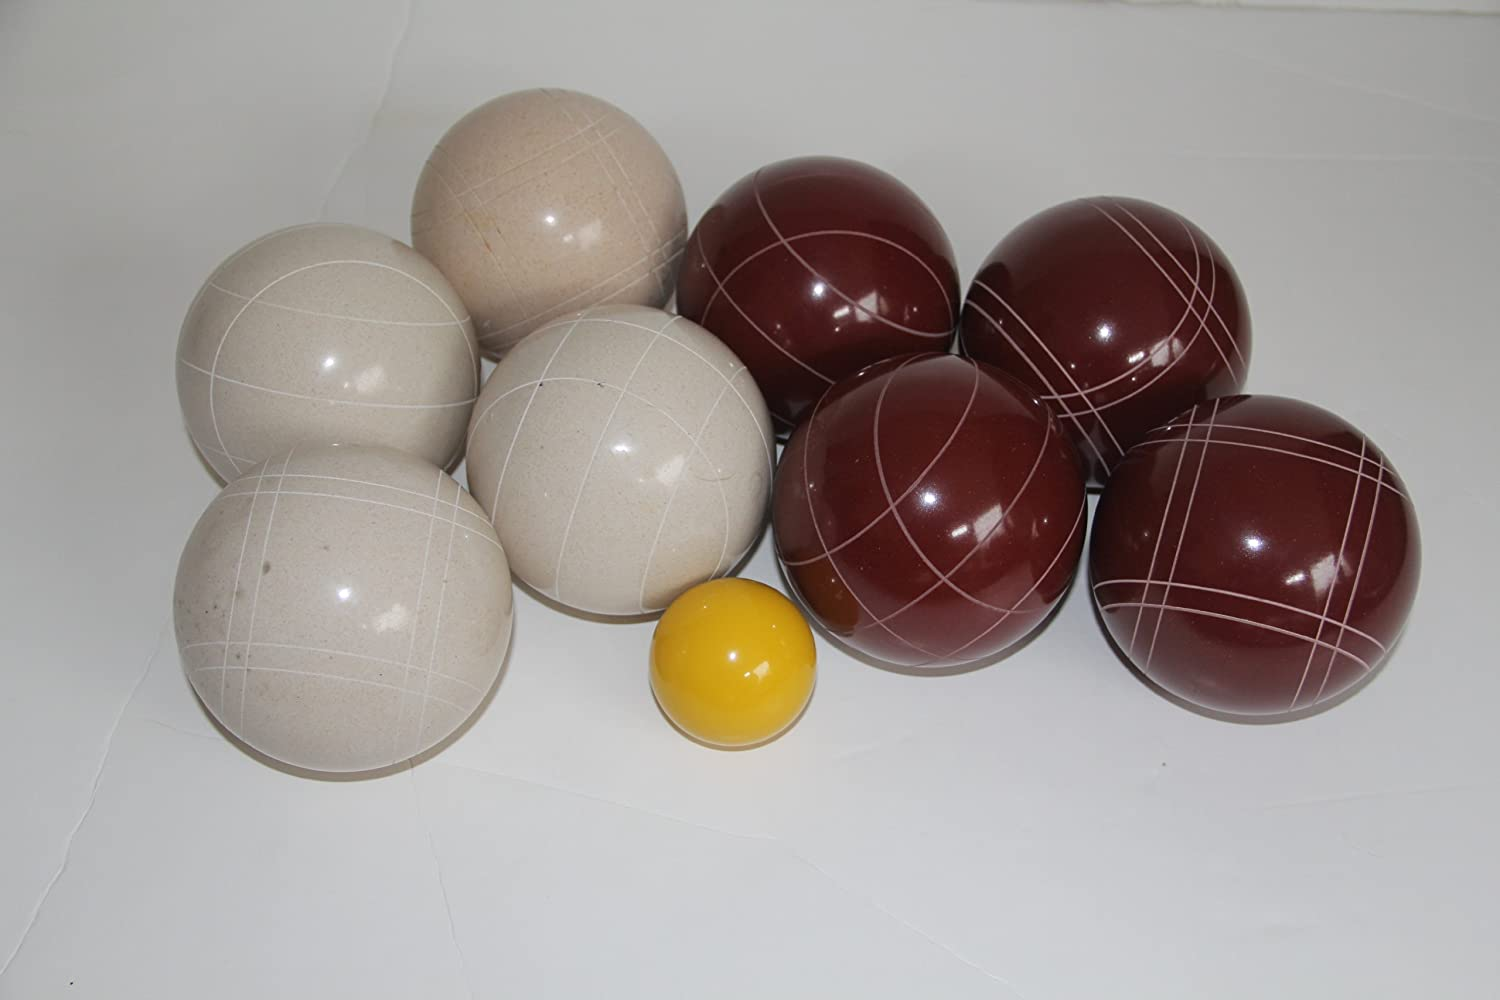 Premium Quality EPCO Tournament Bocce Set - 107mm Red and White Bocce Balls -...